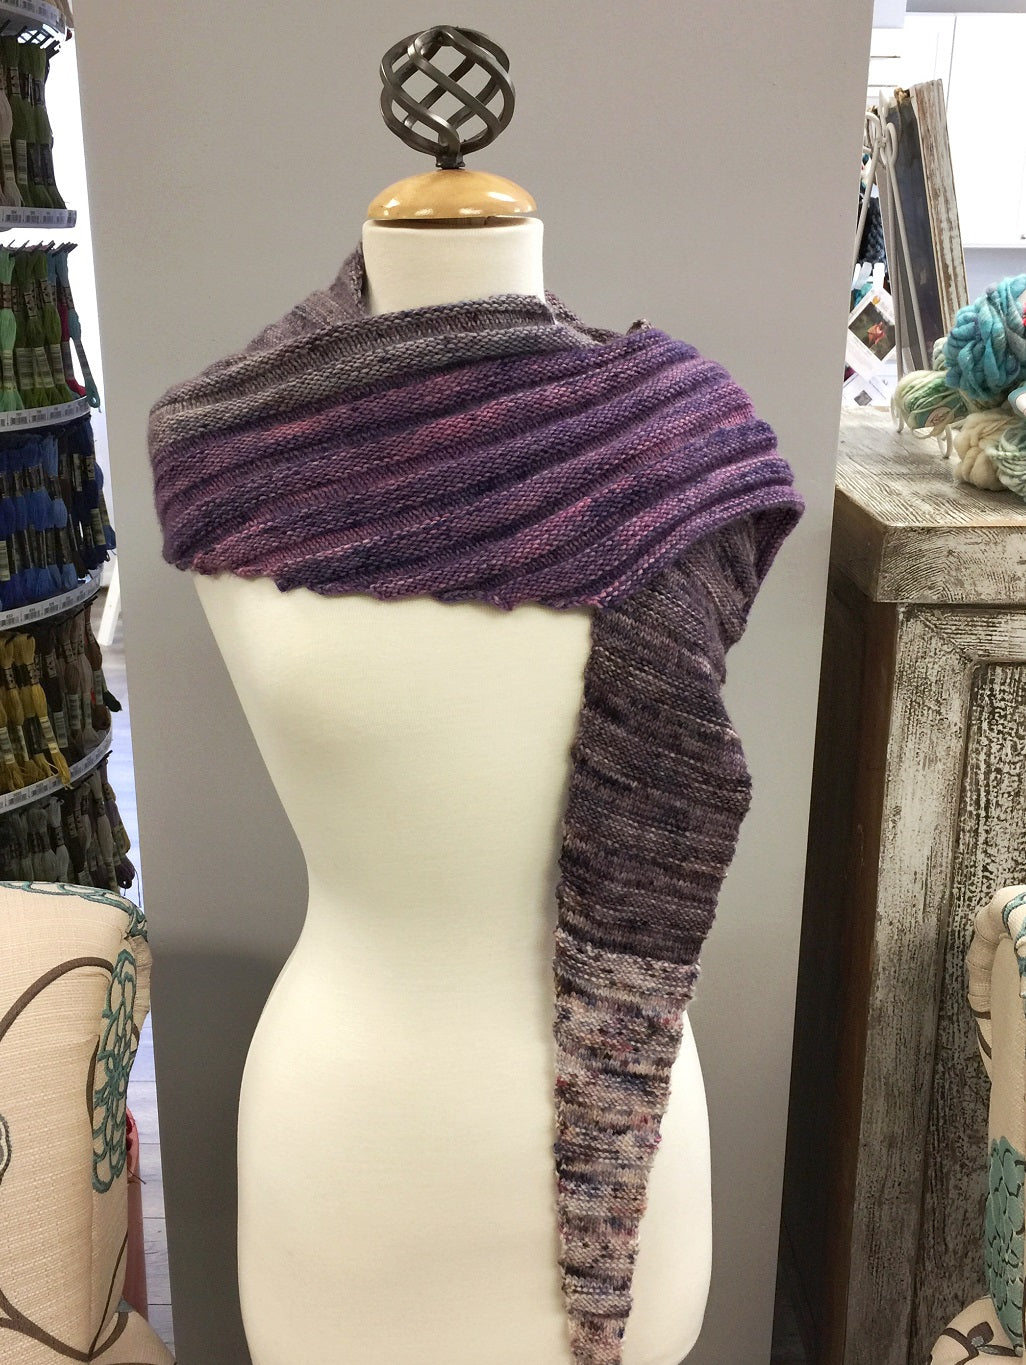 Jade Sapphire Speckled Cashmere Shawl Kit